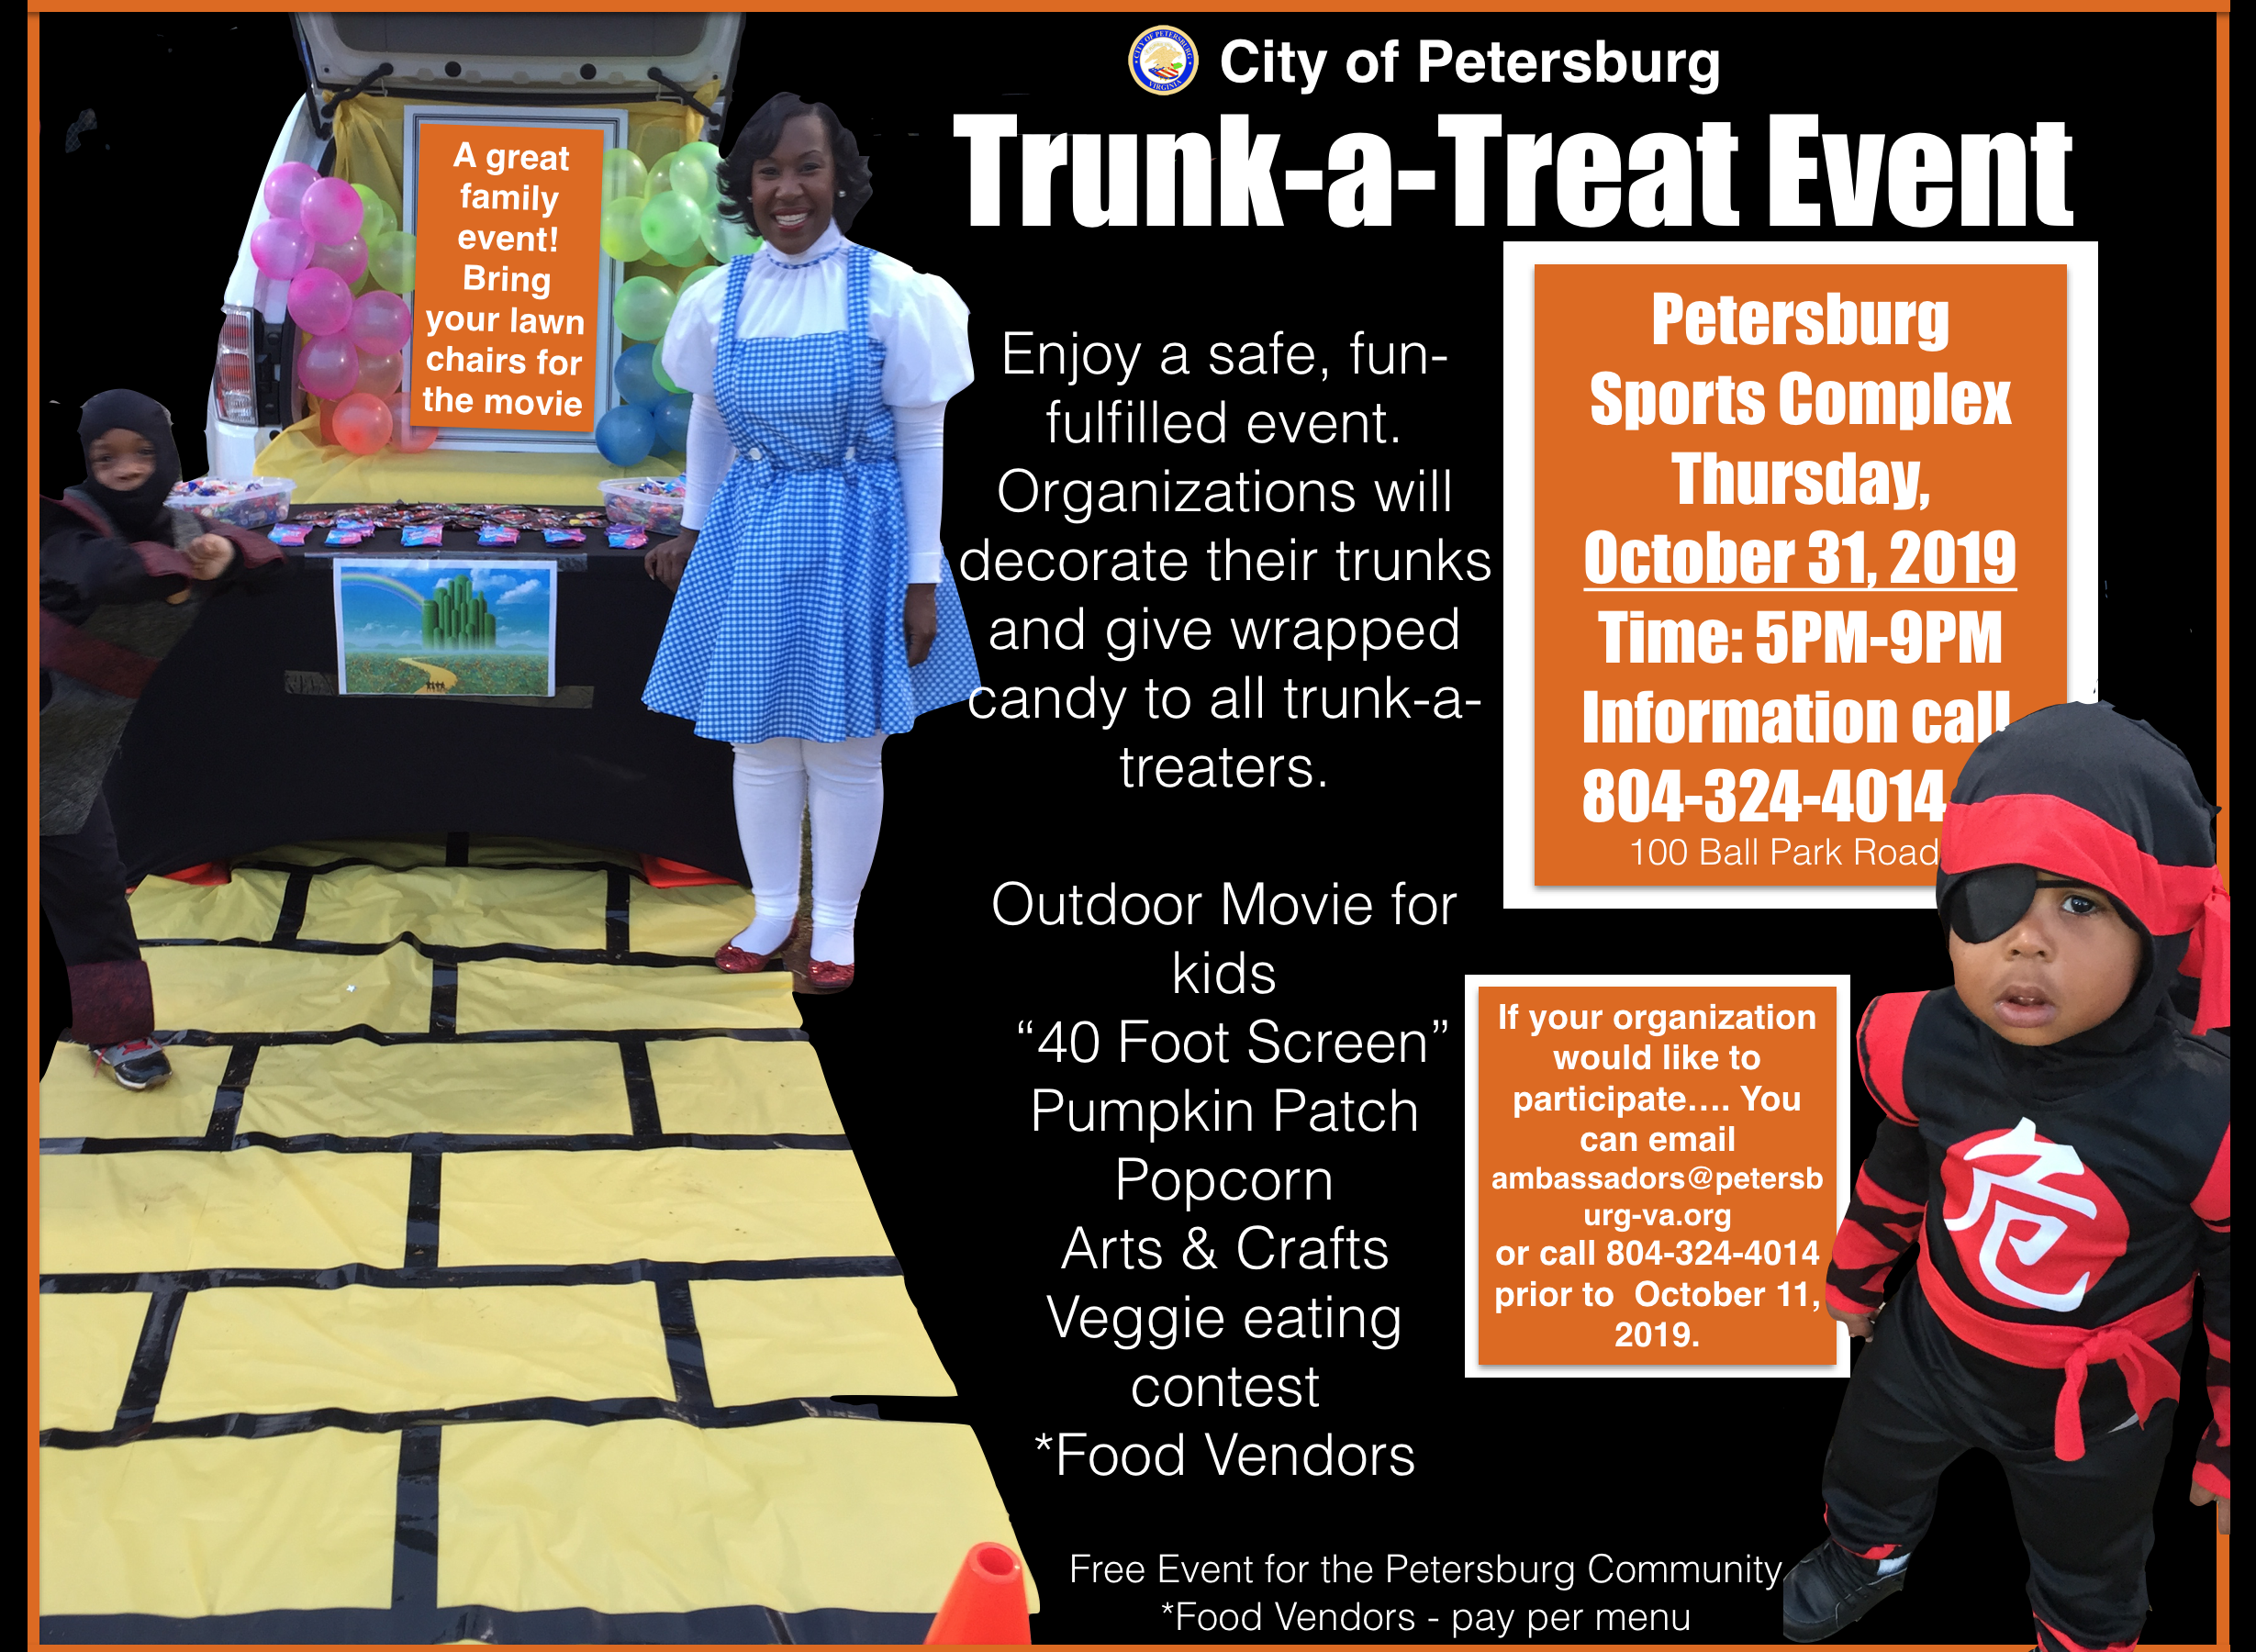 2019 City of Petersburg Trunk-A-Treat